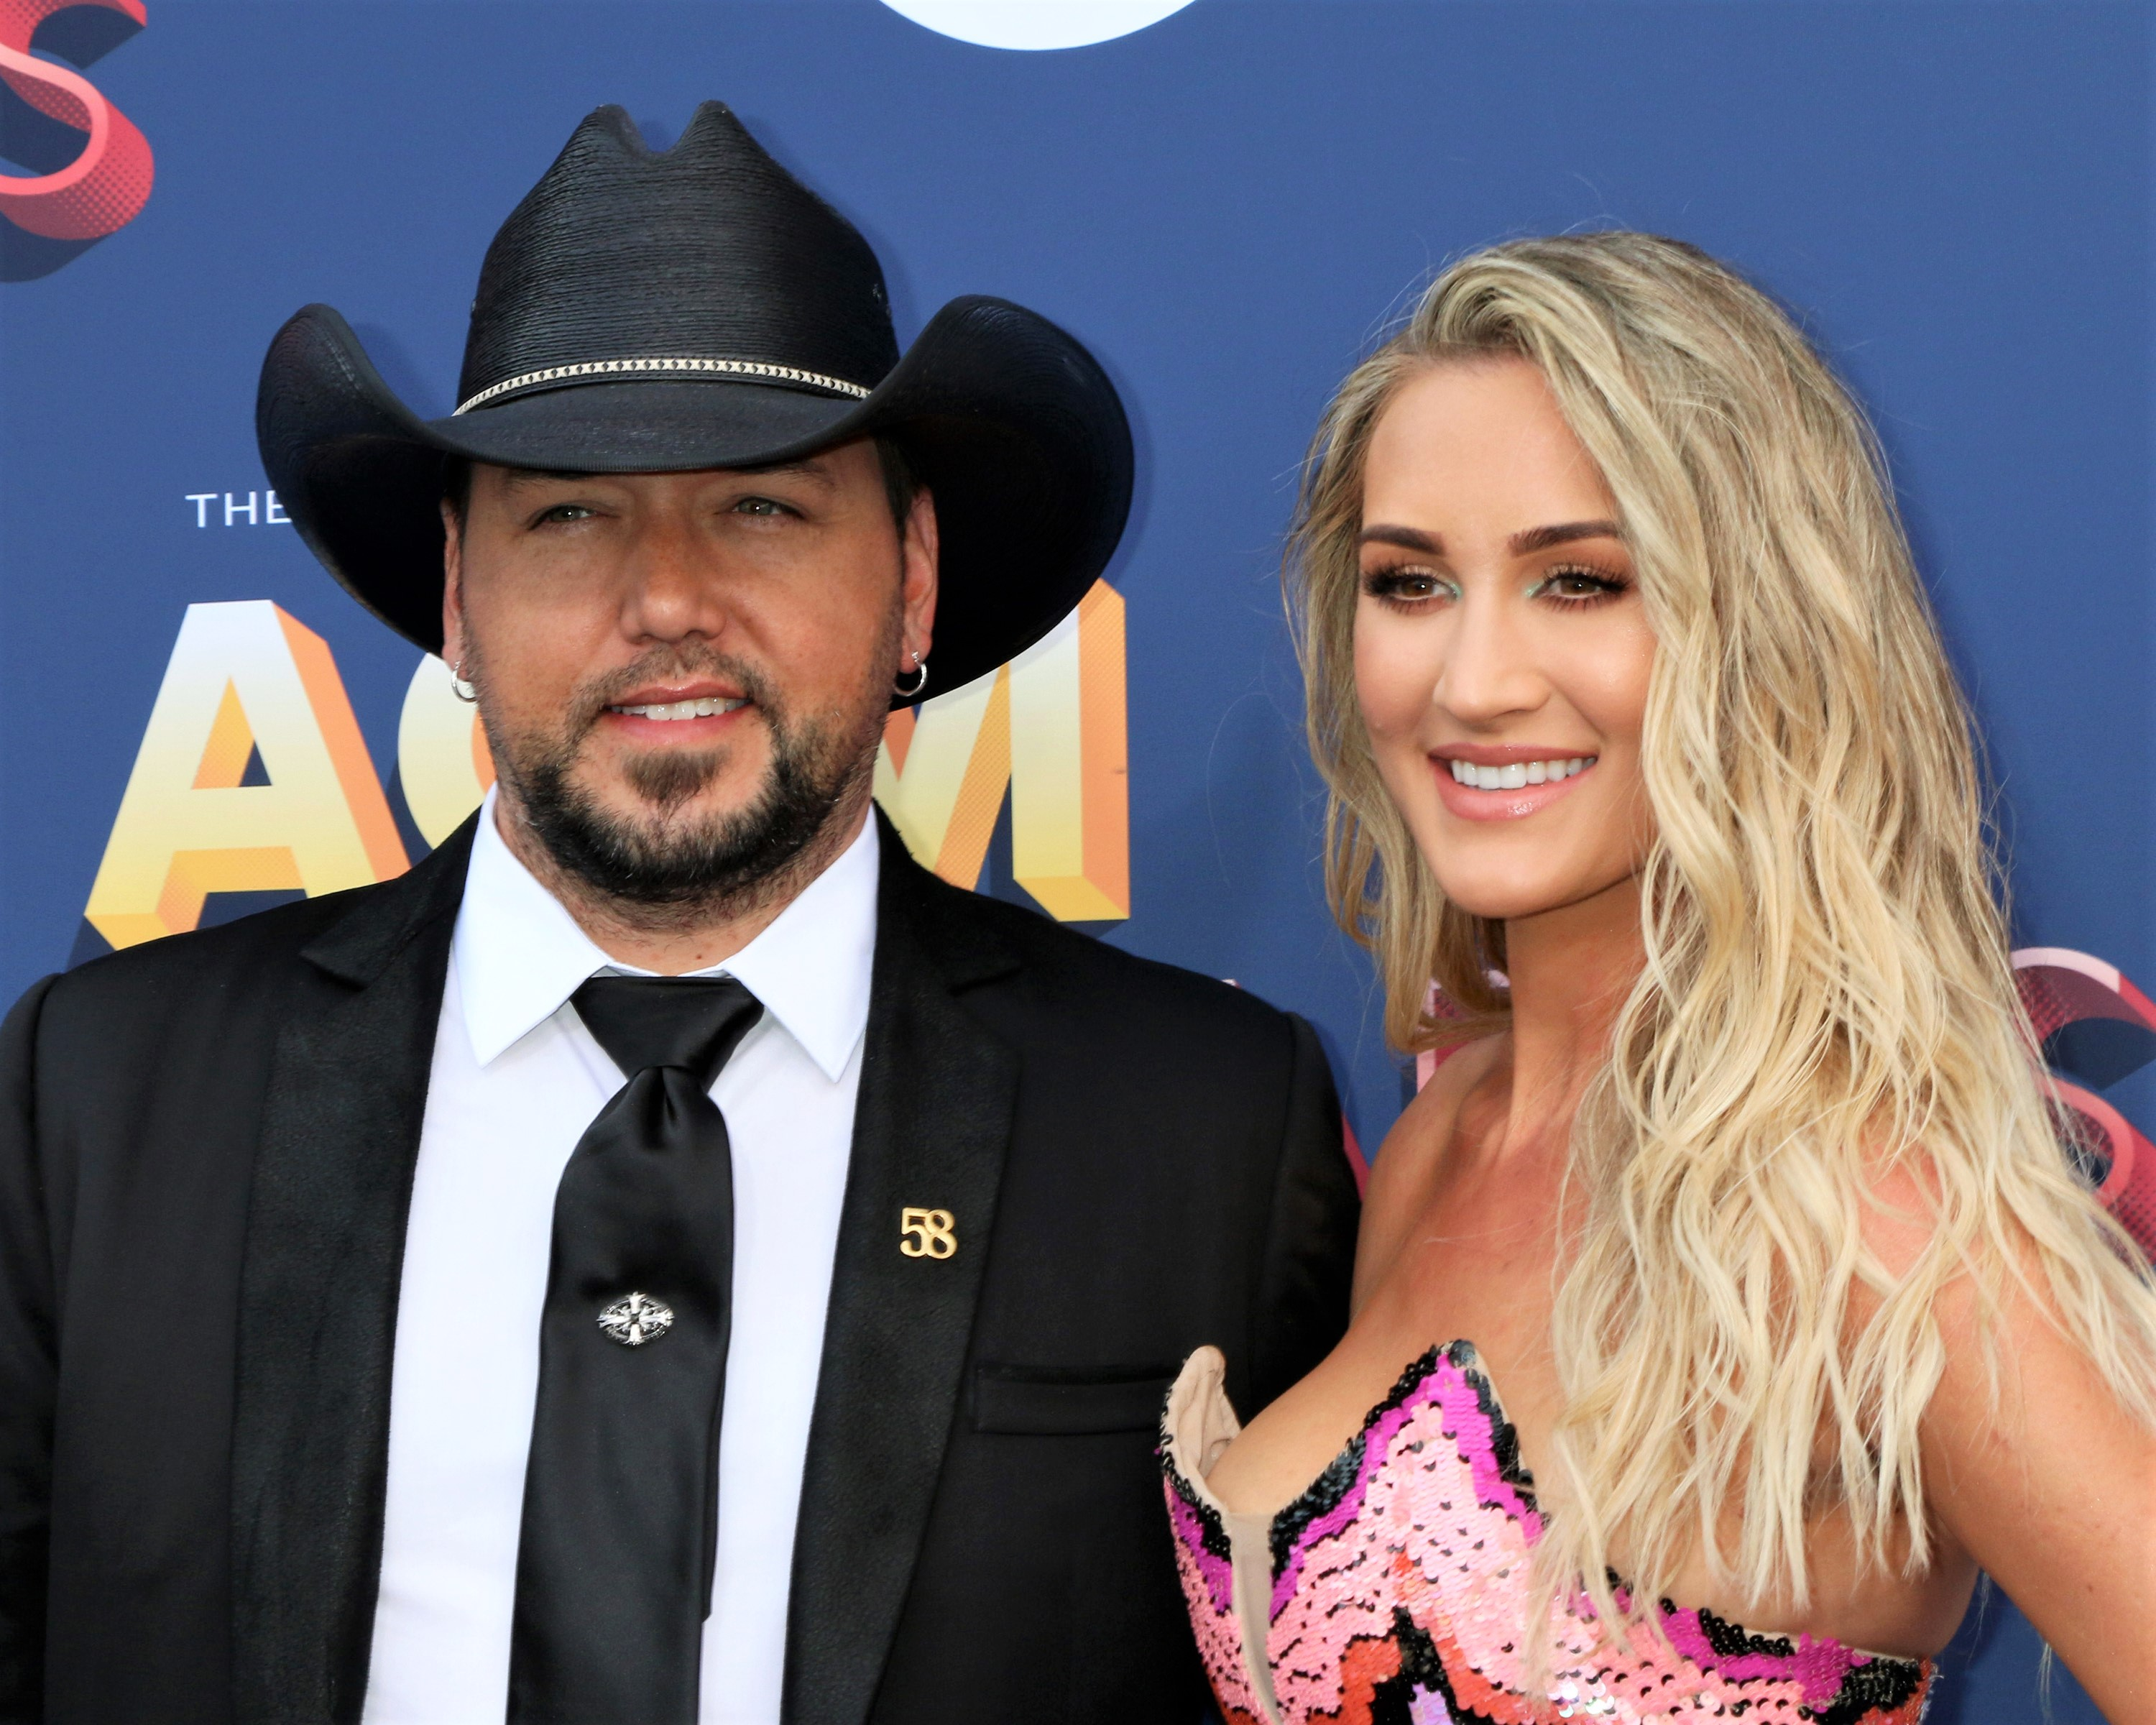 She's Country! Jason Aldean and Wife Brittany Welcome Daughter Navy Rome